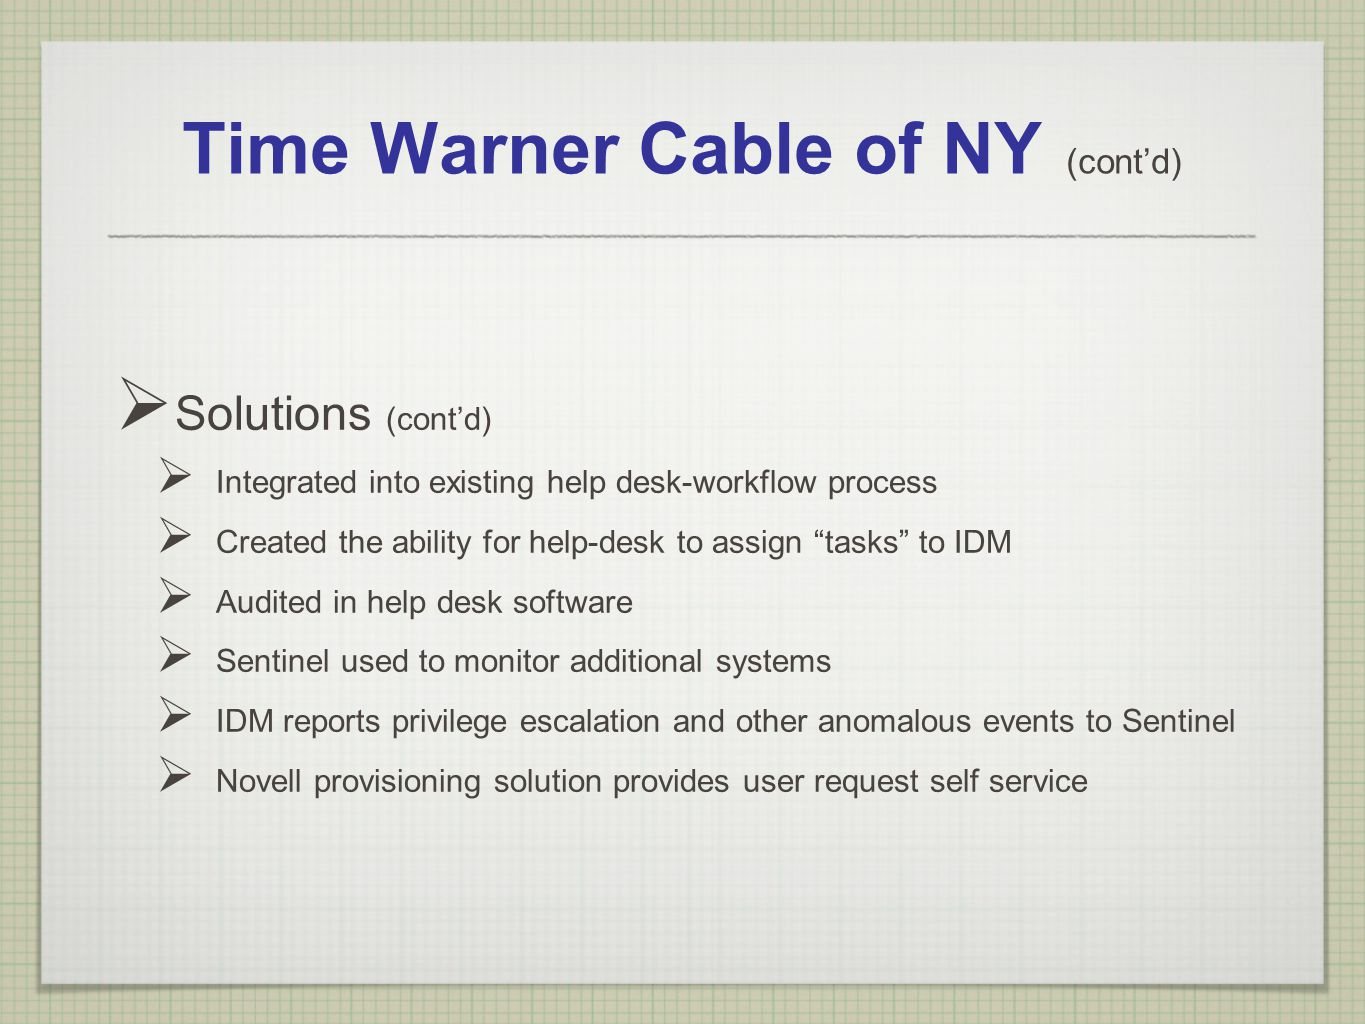 Time Warner Cable of NY (contd) Solutions (contd) Integrated into existing help desk-workflow process Created the ability for help-desk to assign task